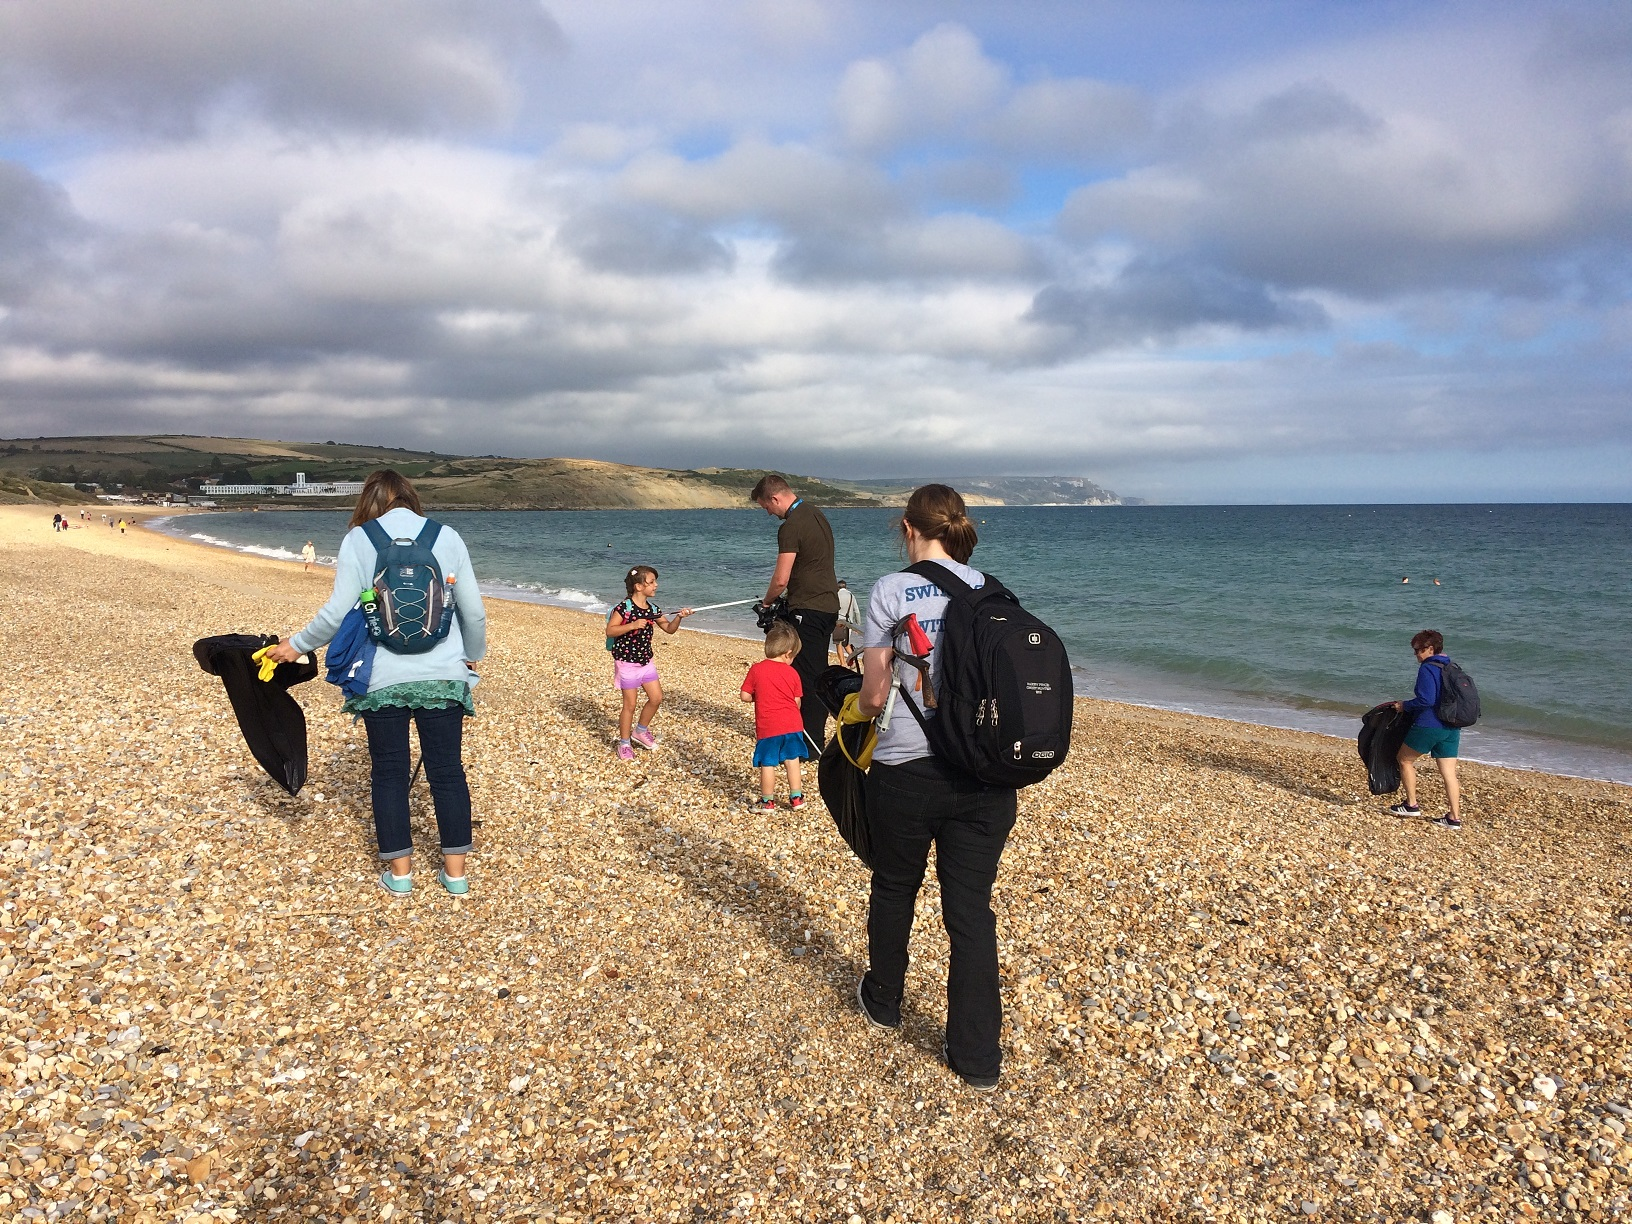 Weymouth SEA LIFE staff and volunteers take on Great British Beach Clean 2